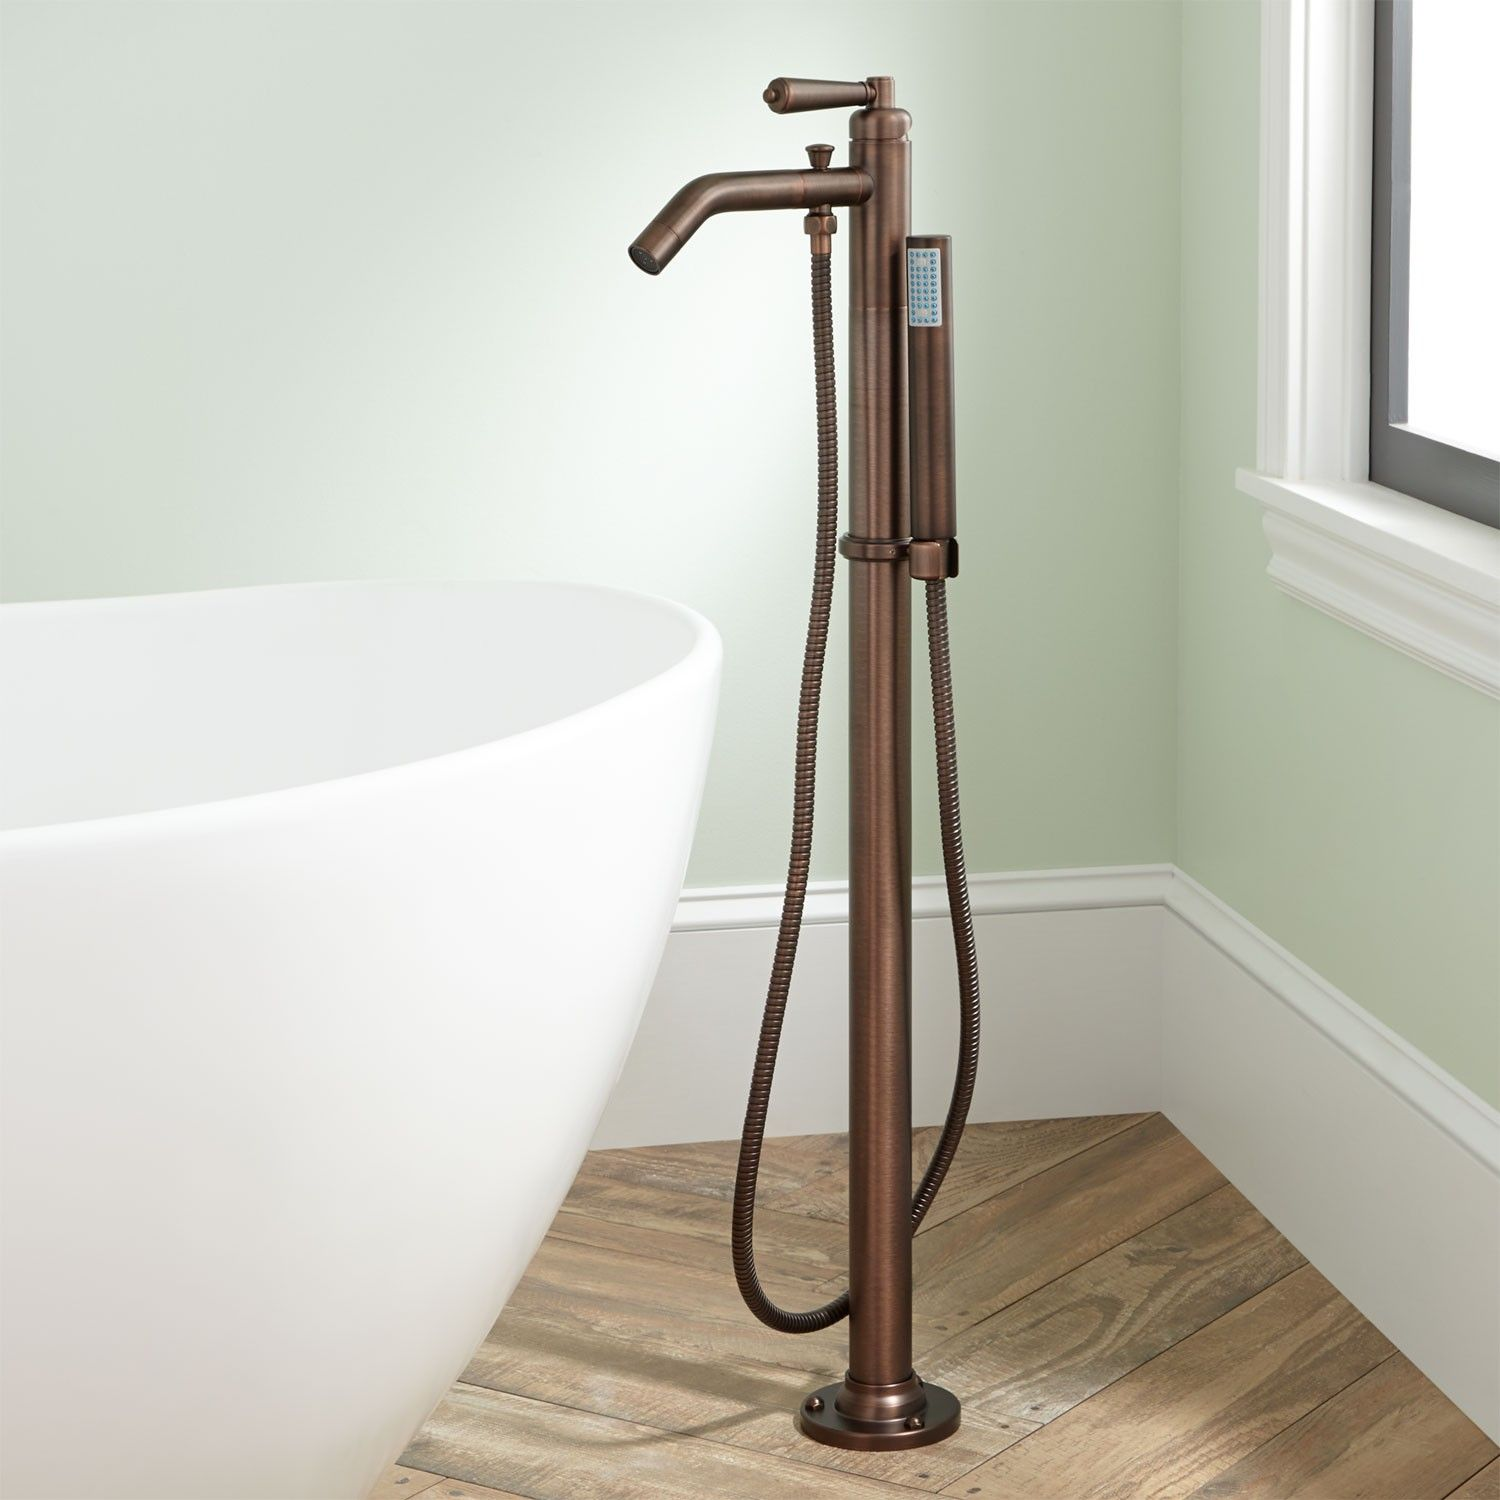 Napier Freestanding Tub Faucet and Hand Shower | Freestanding tub ...